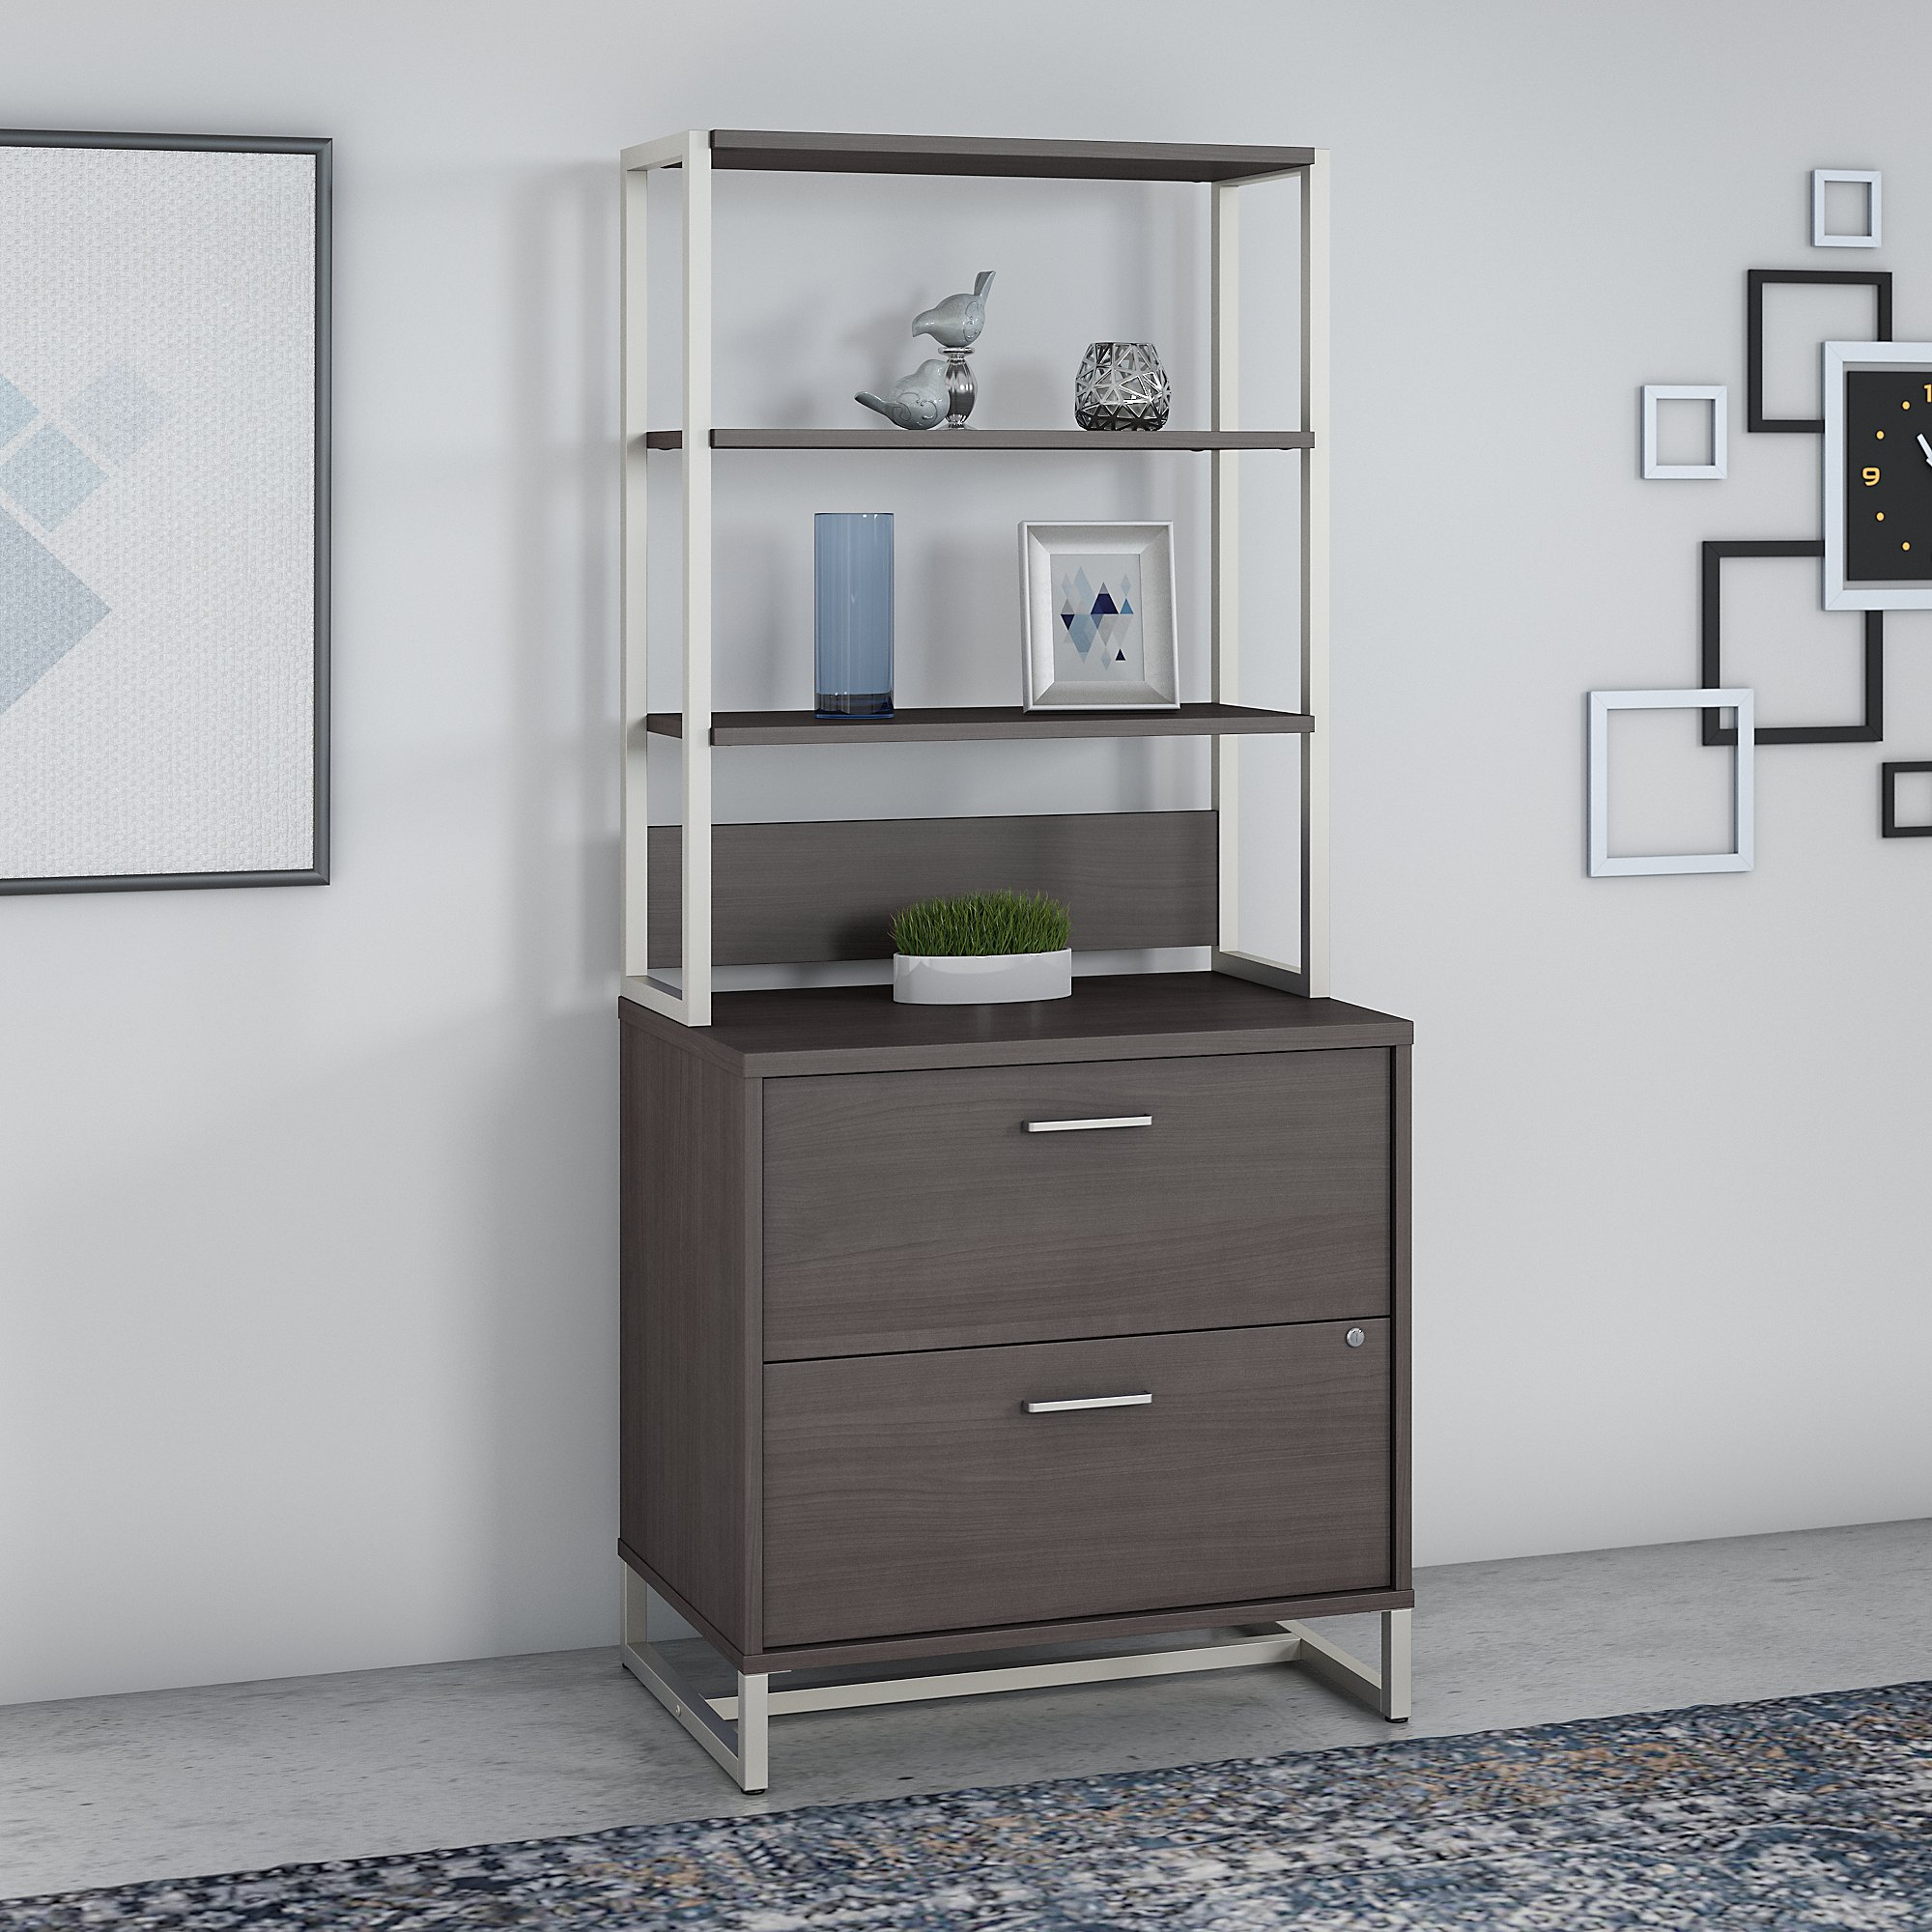 office by kathy ireland wall cabinet in storm gray